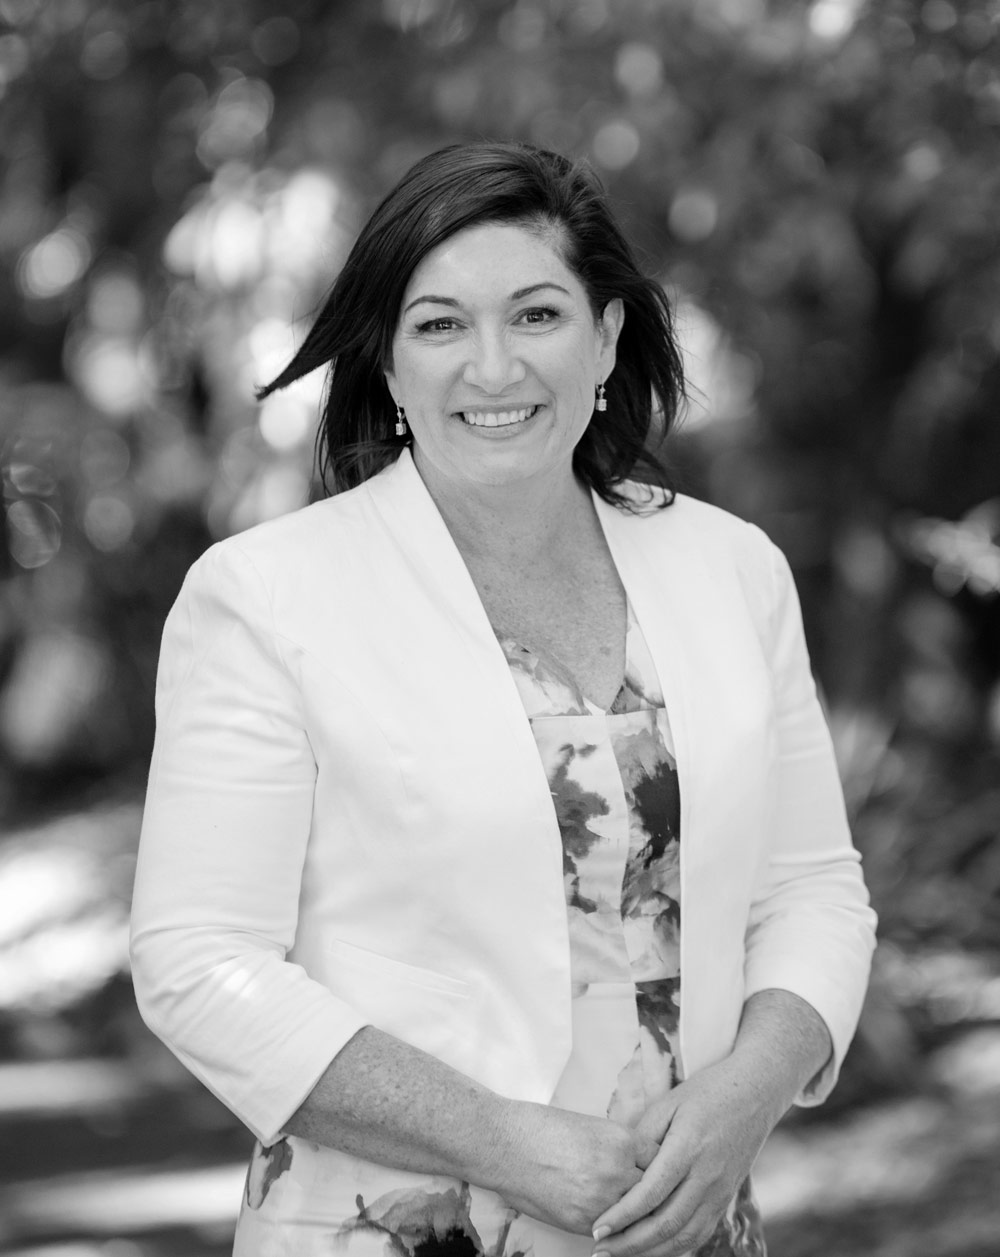 The Hon. Leeanne Enoch, MP, Minister for Innovation, Science and the Digital Economy and Minister for Small Business.